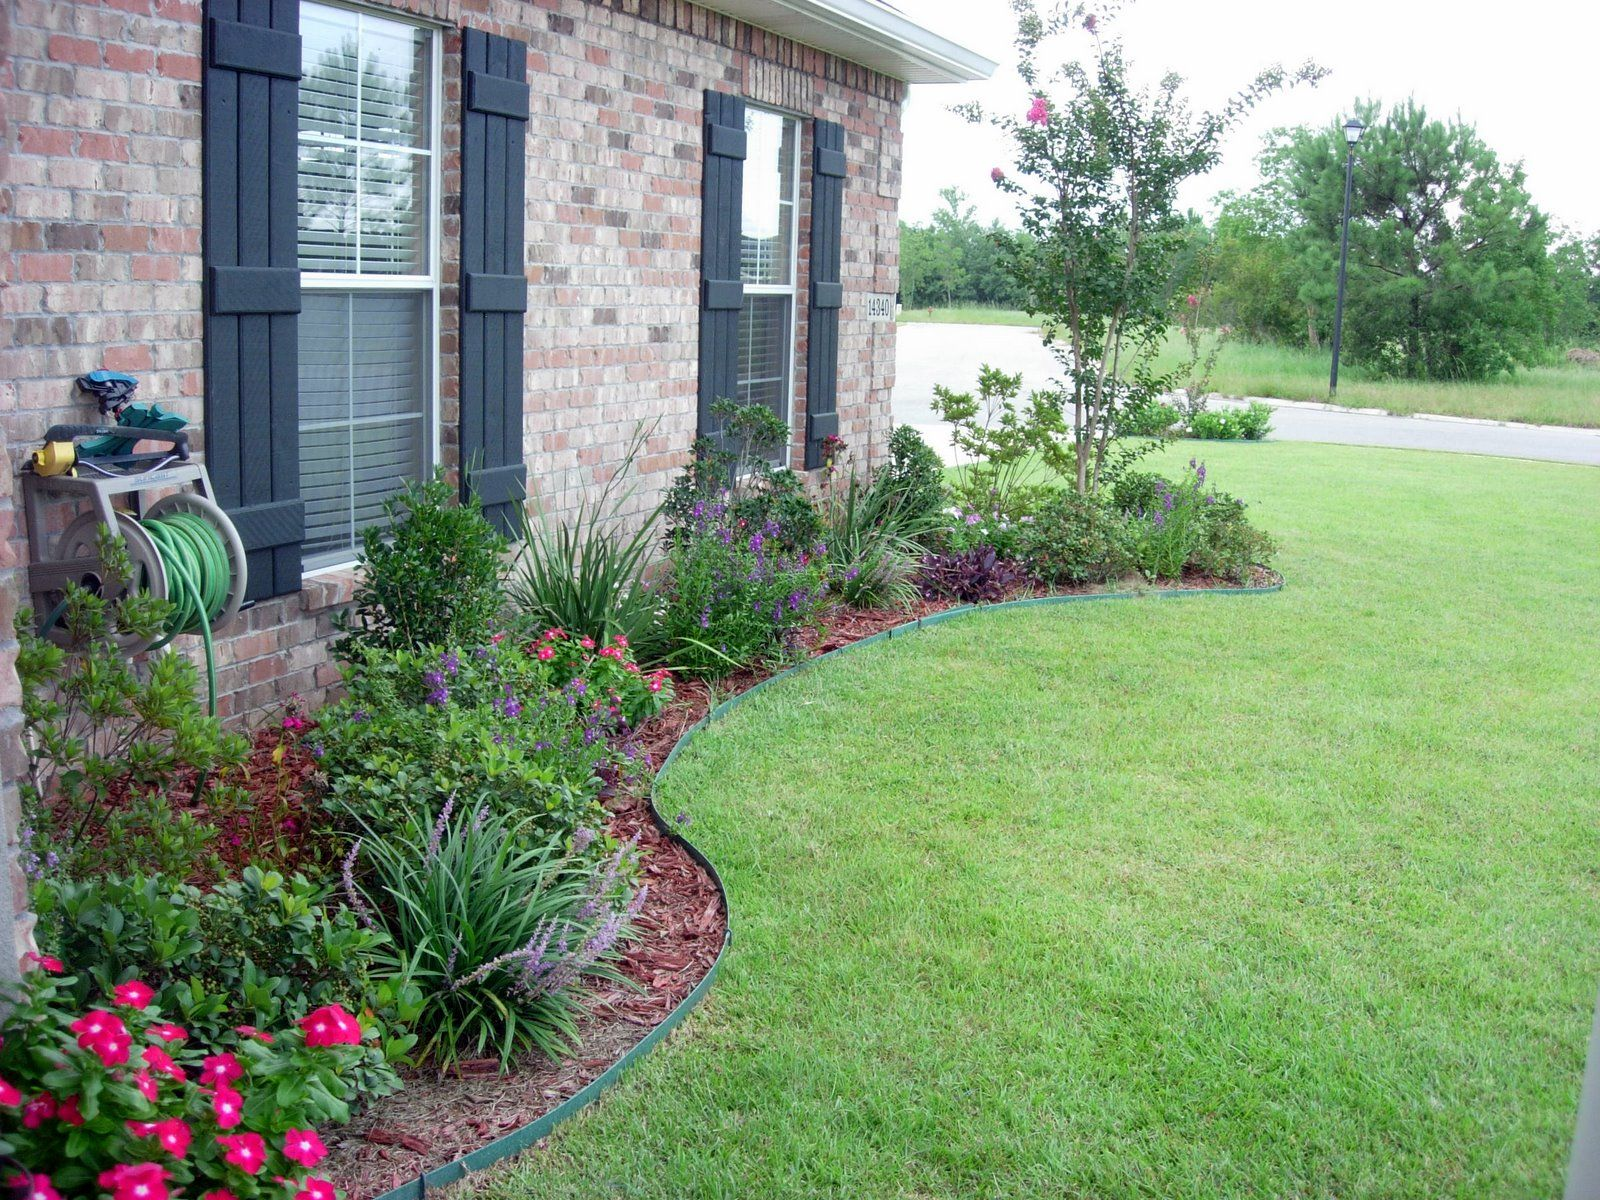 Attirant Flower Bed Designs For Front Of House | Use Shrubs /small Trees To Form The